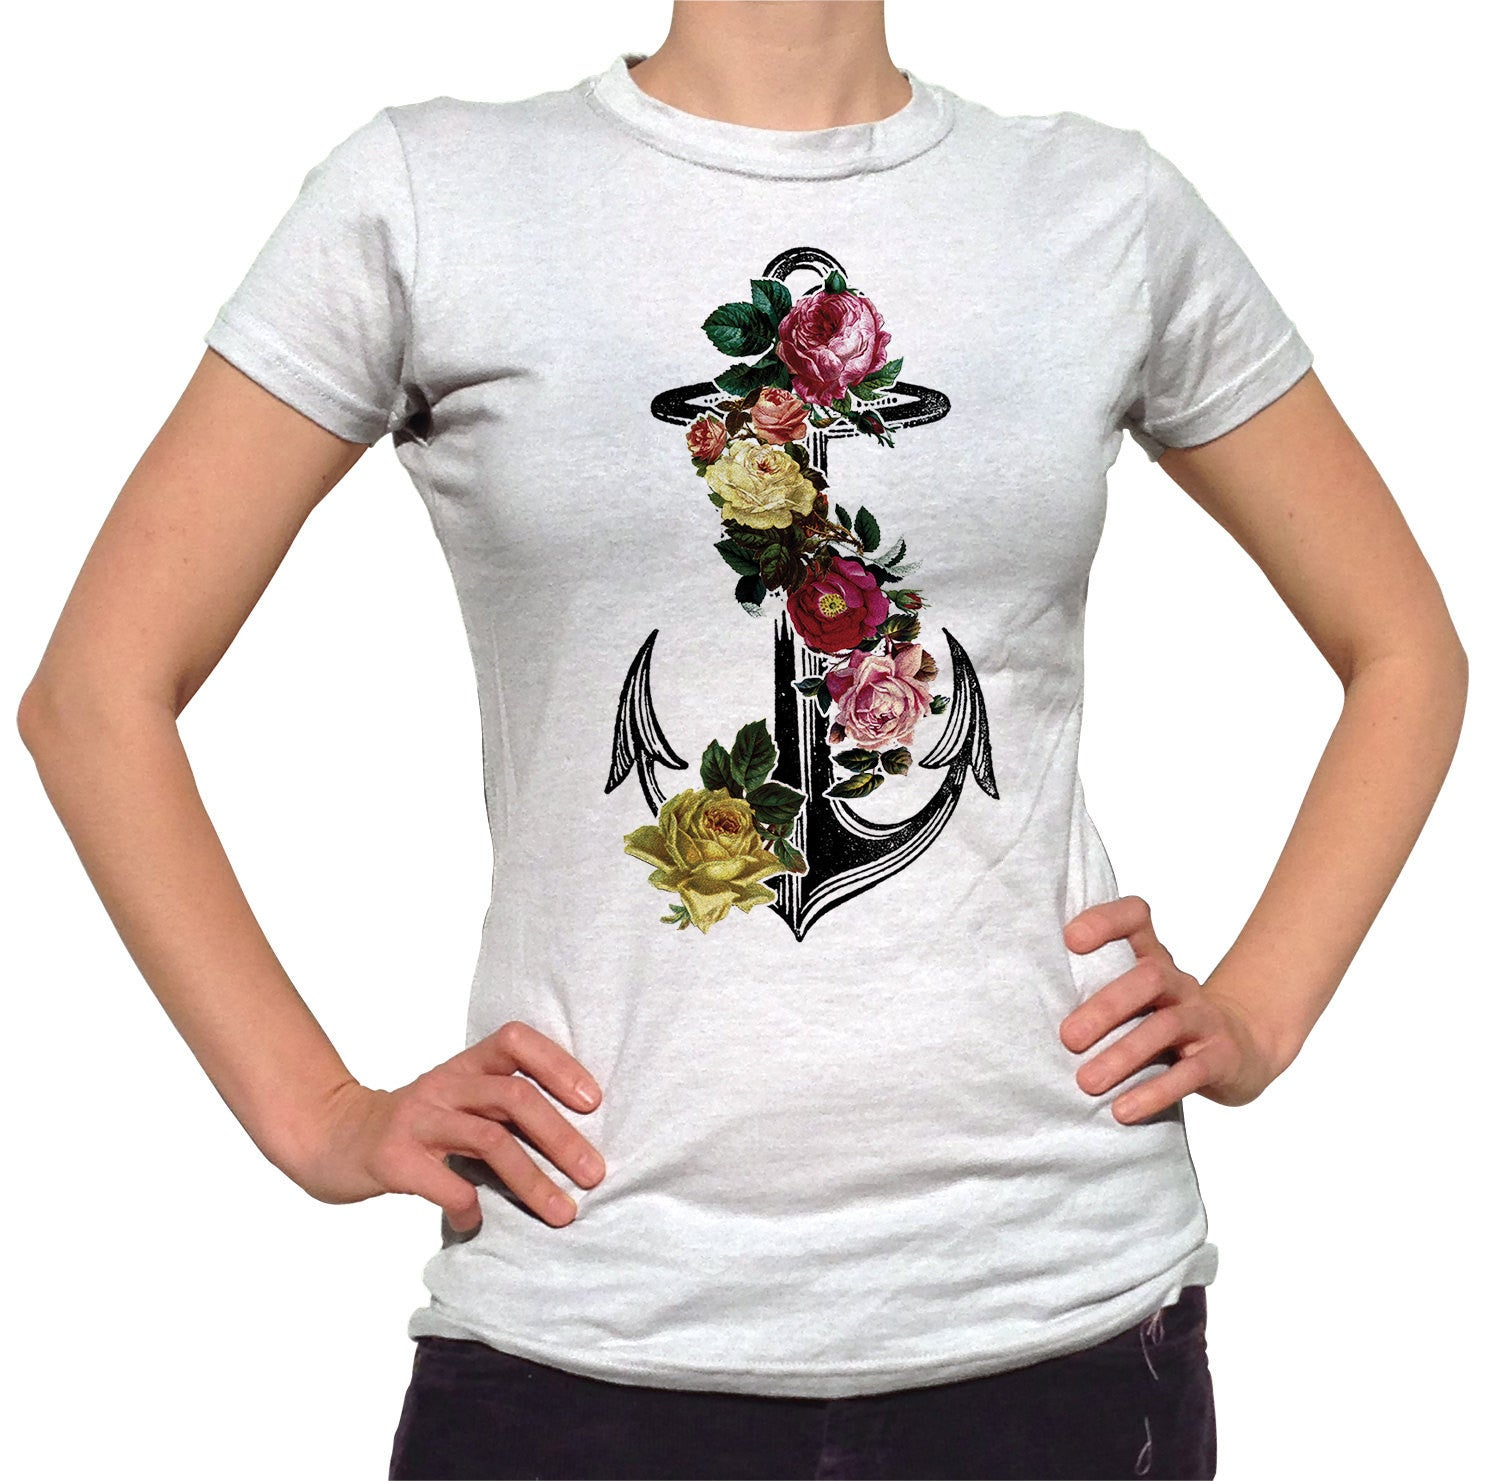 Women's Floral Anchor T-Shirt Tattoo Vintage Nautical Feminine T-Shirt